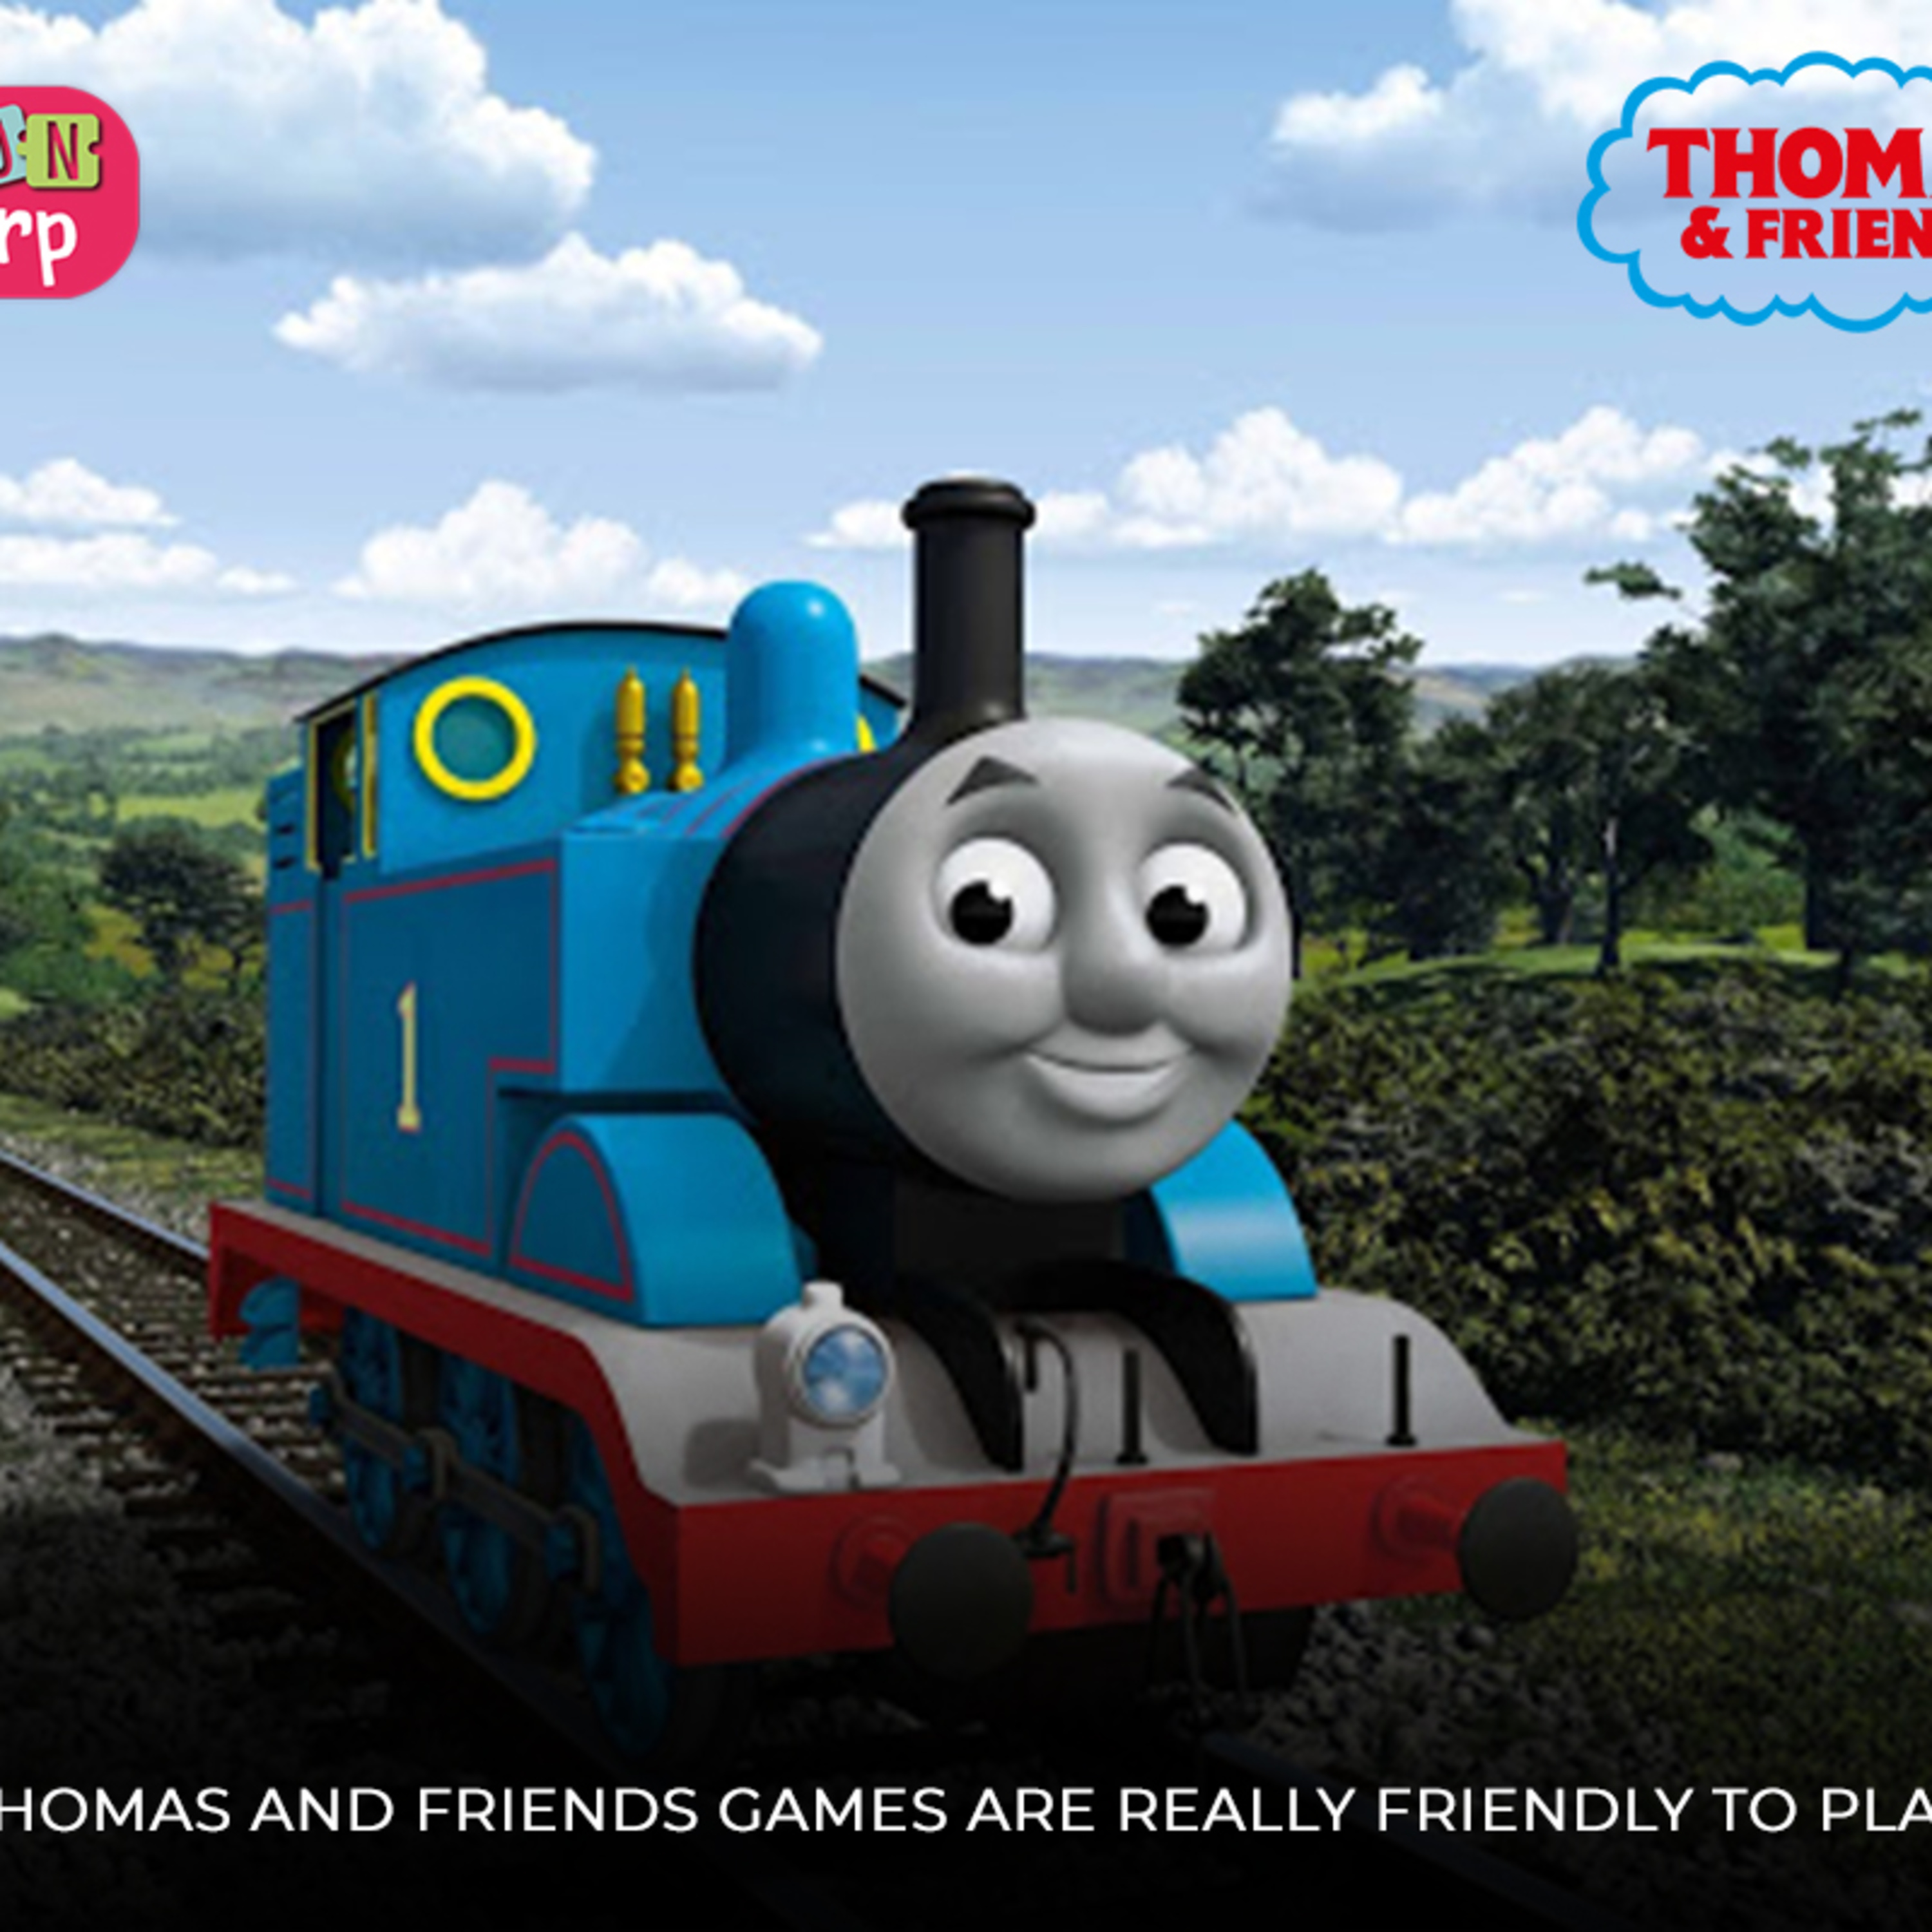 Thomas and Friends Games are Really Friendly To Play